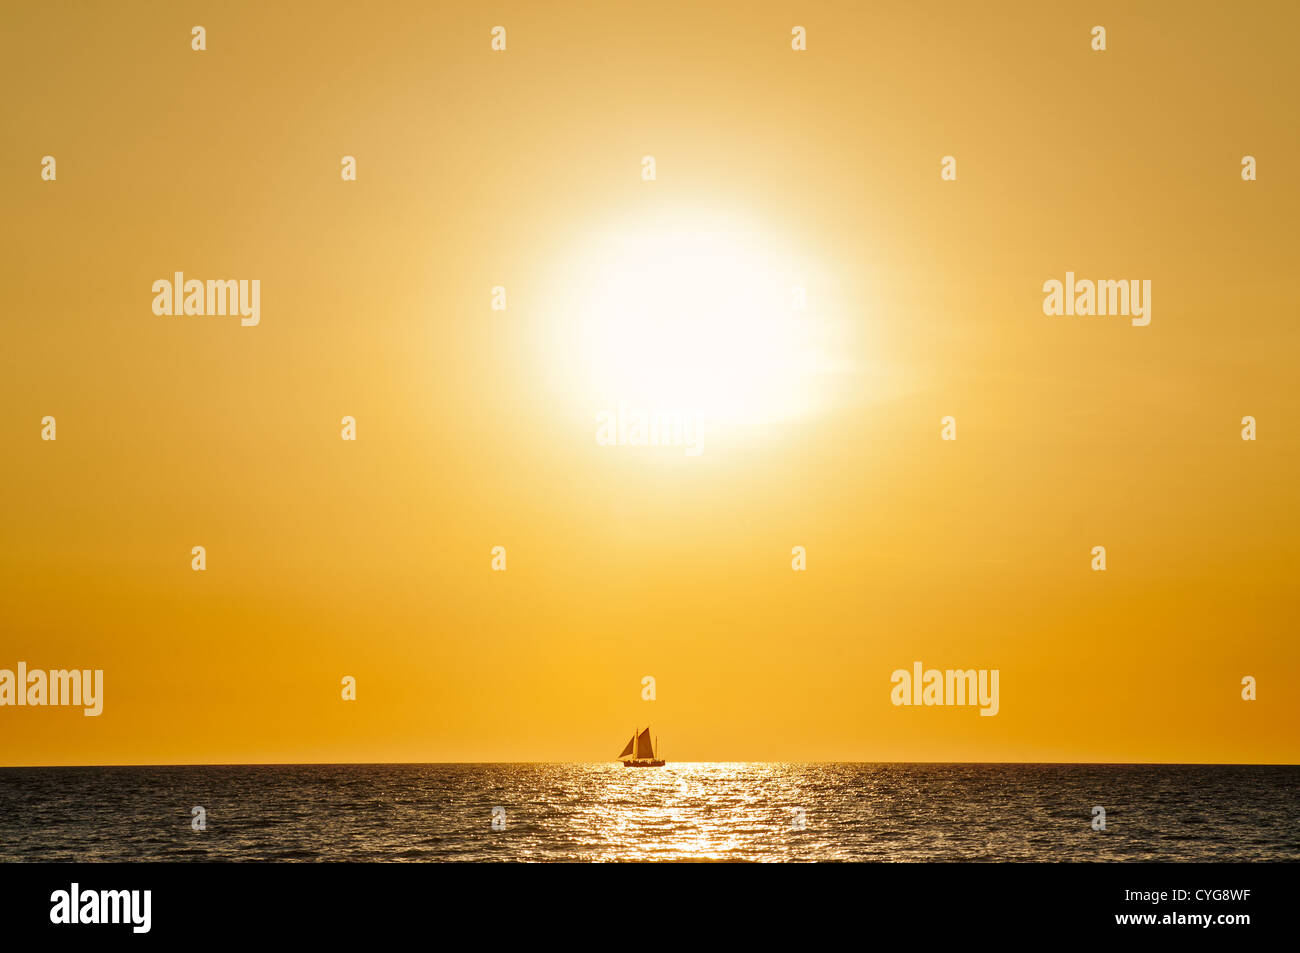 Sailboat at the horizon in front of the setting sun. - Stock Image